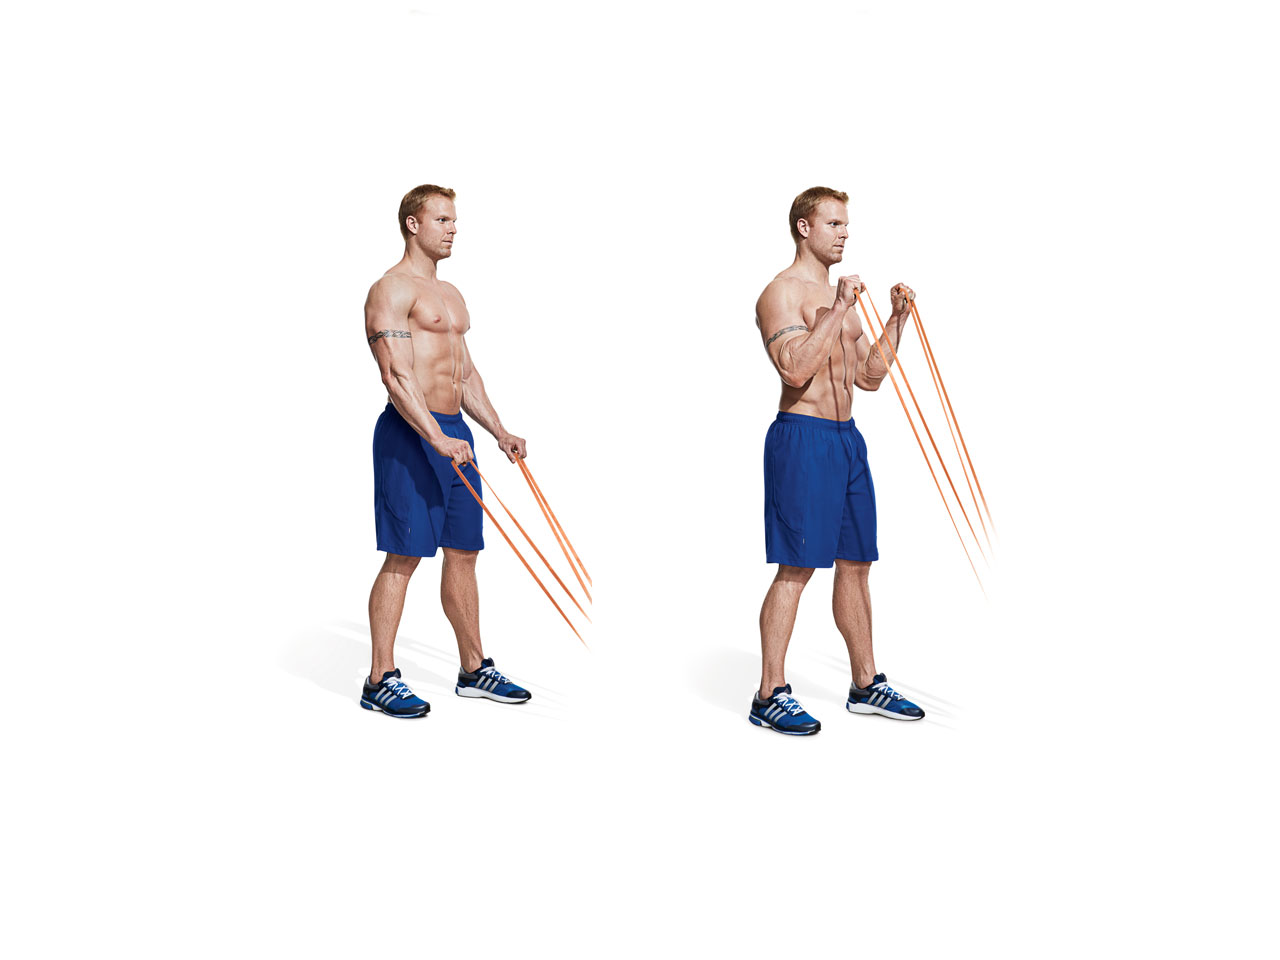 Reverse Curl (band) Video - Watch Proper Form, Get Tips ...